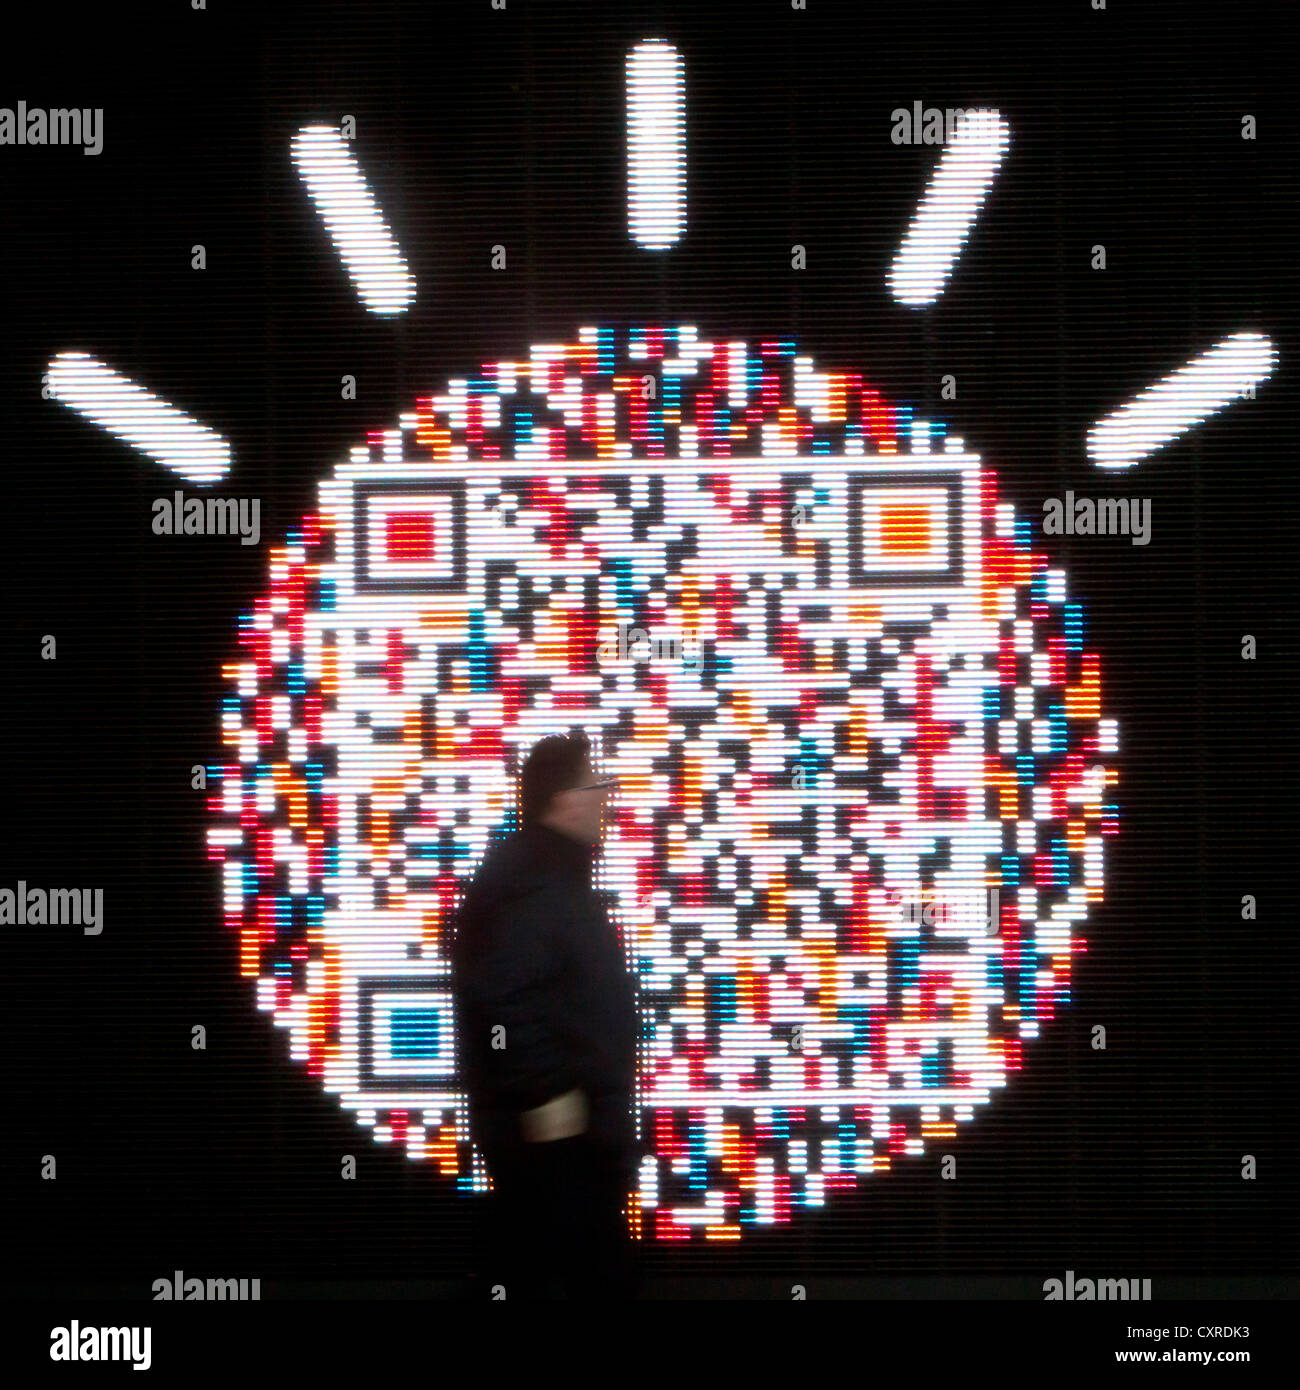 QR-code, matrix barcode, as an art object, exhibition stand of IBM, a technology and consulting corporation, CeBIT - Stock Image